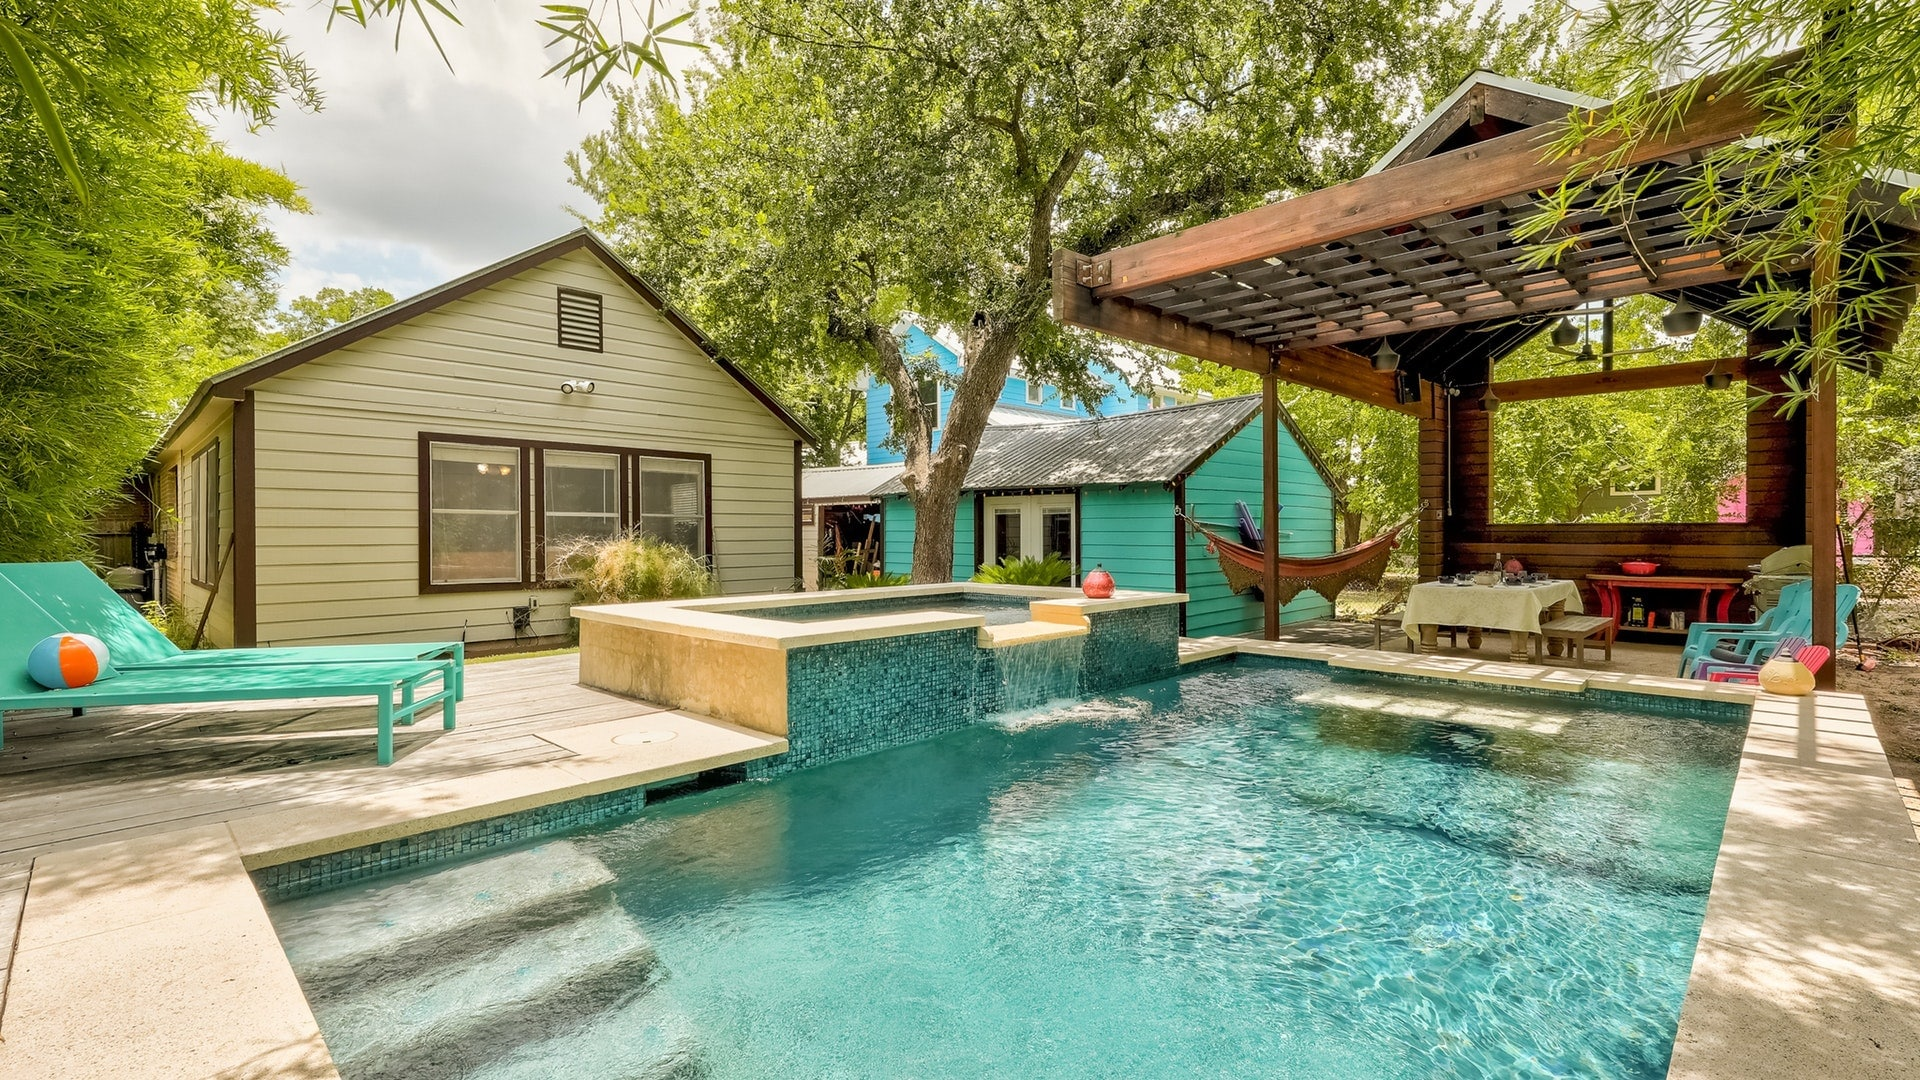 4BR Home with Backyard Oasis and Sparkling Pool